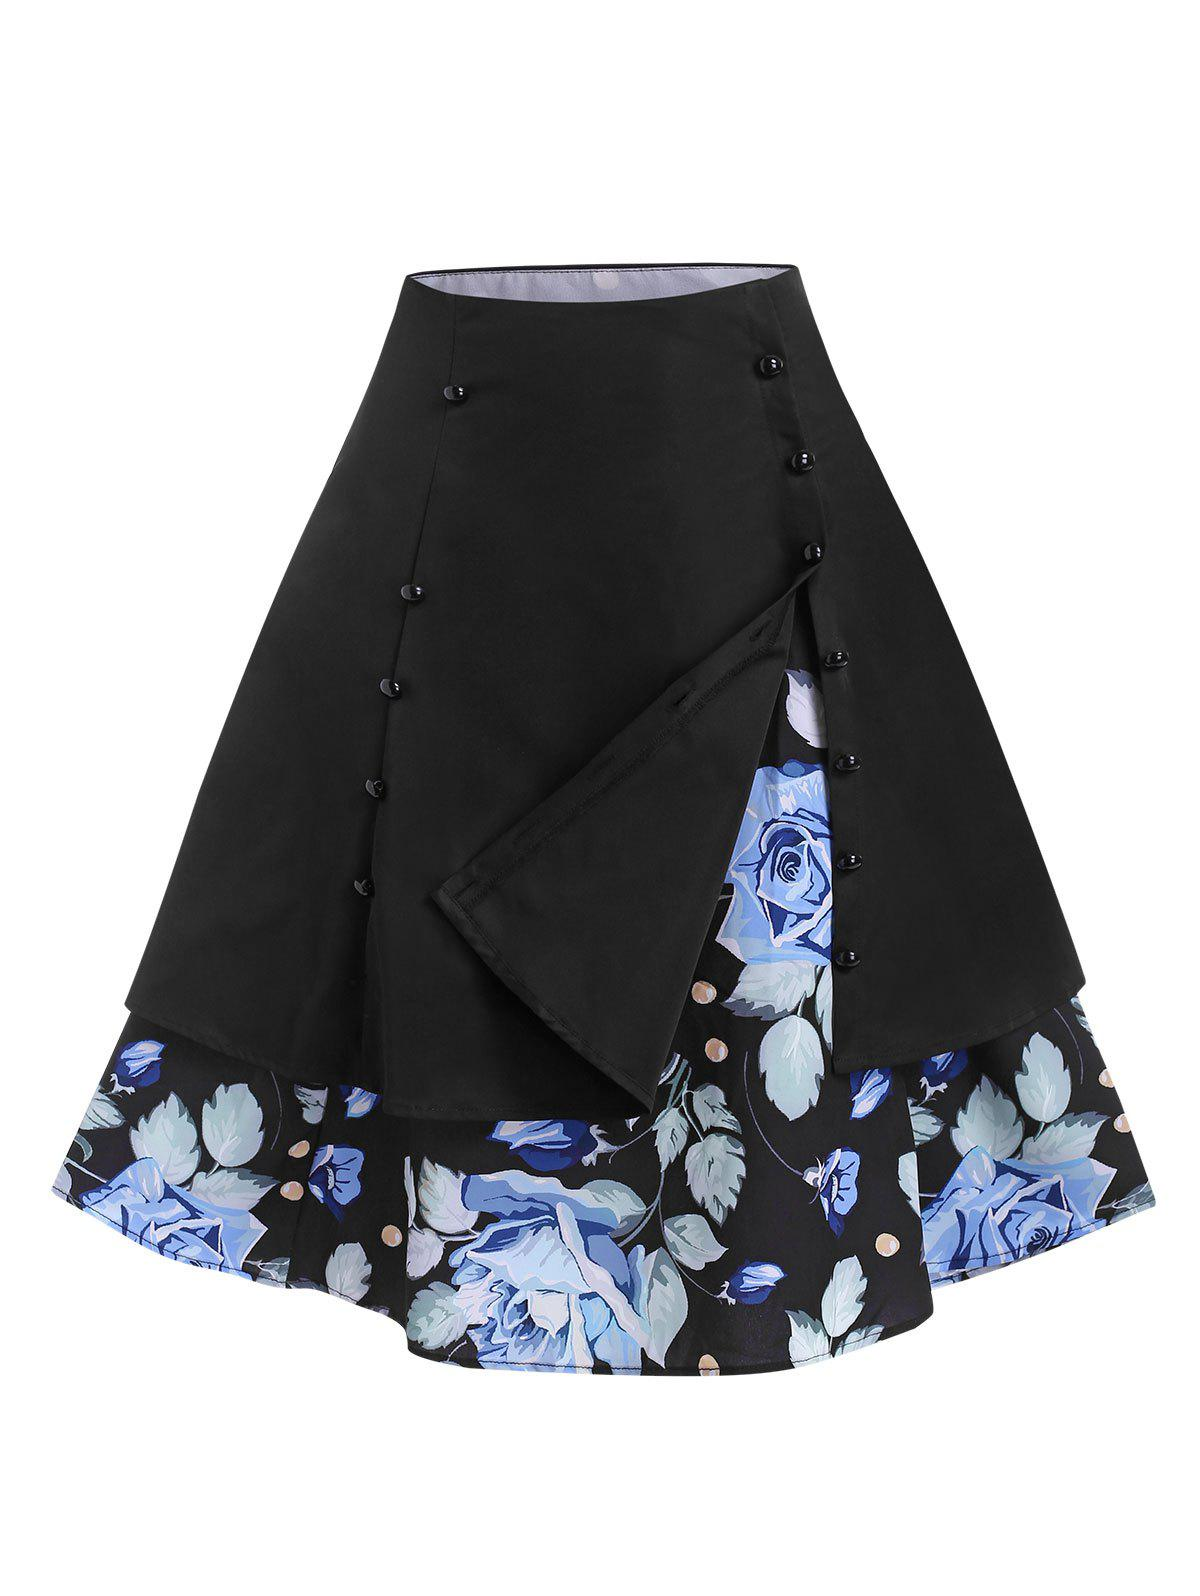 Chic Sailor Style Layered Floral Vintage Skirt